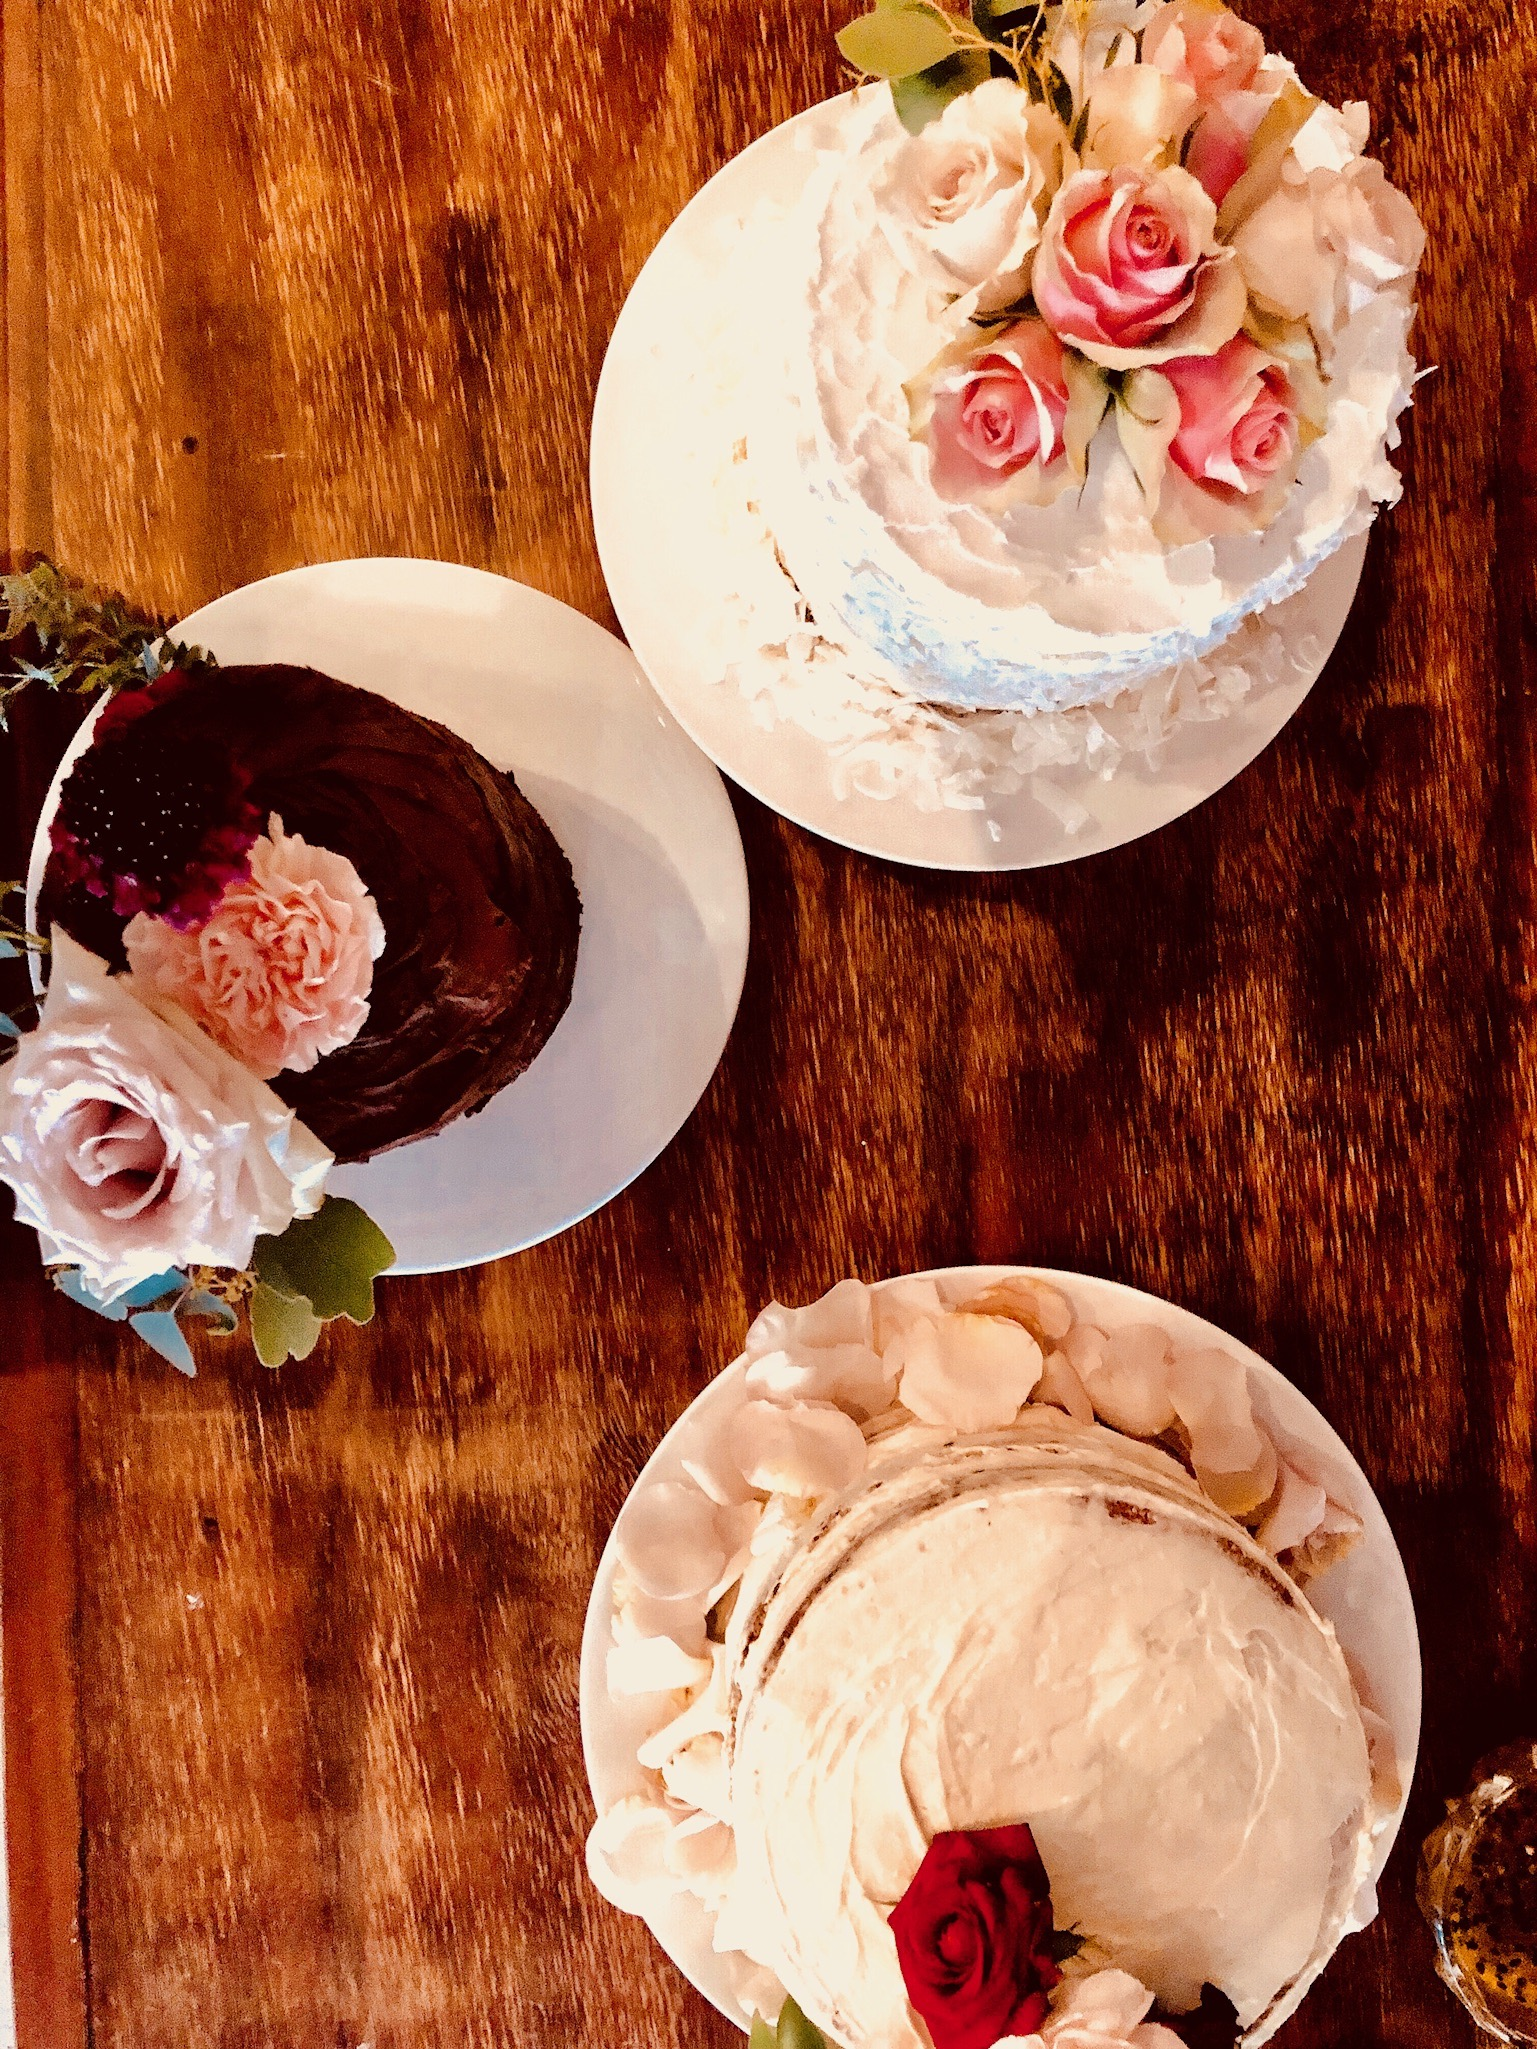 Wedding cakes x 3 from above.jpg